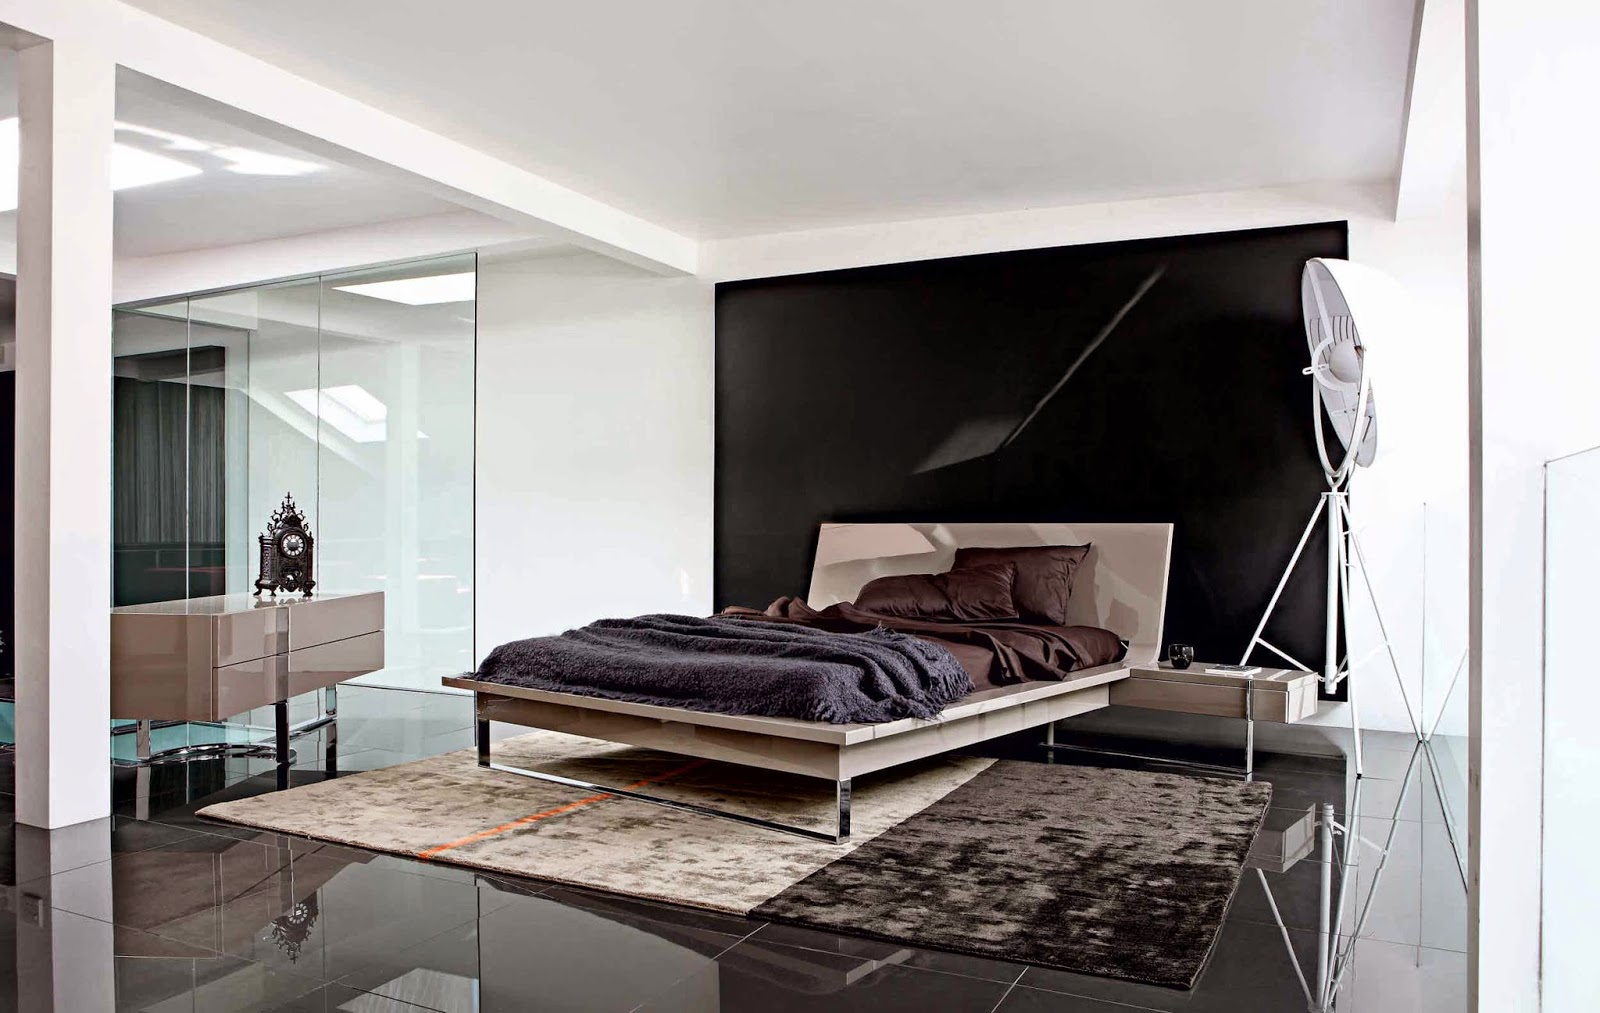 Inspiration-Decoration-The-Bedroom-Minimalist